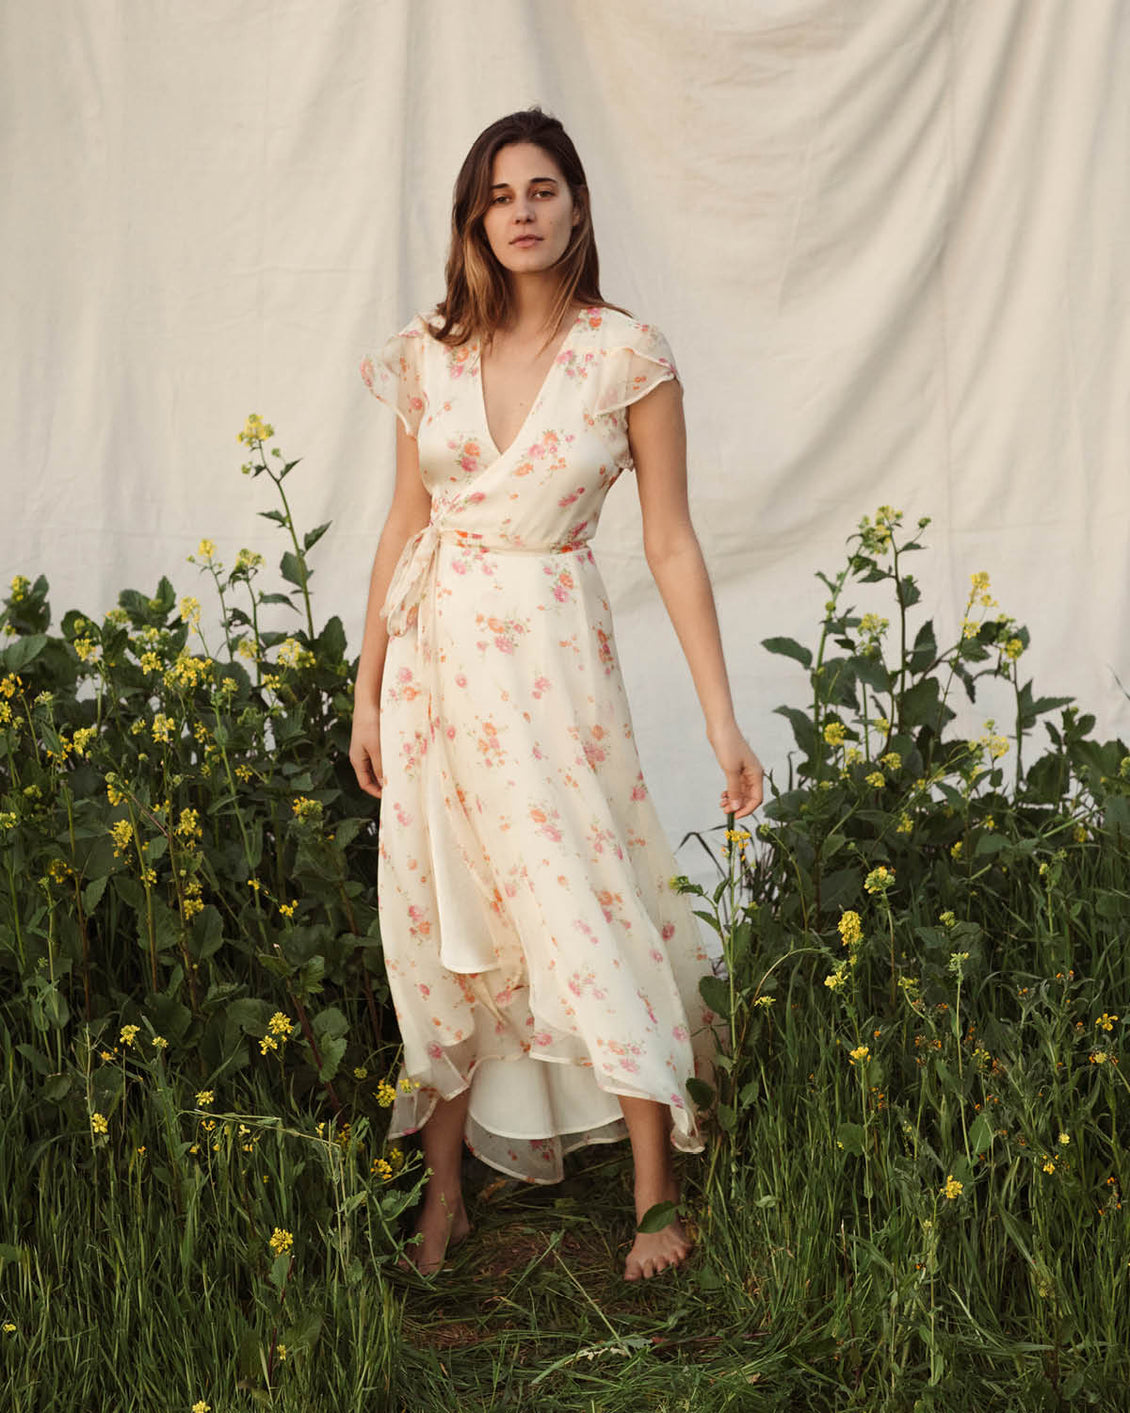 The Autumn Dress | Summer Blossom (Silk)